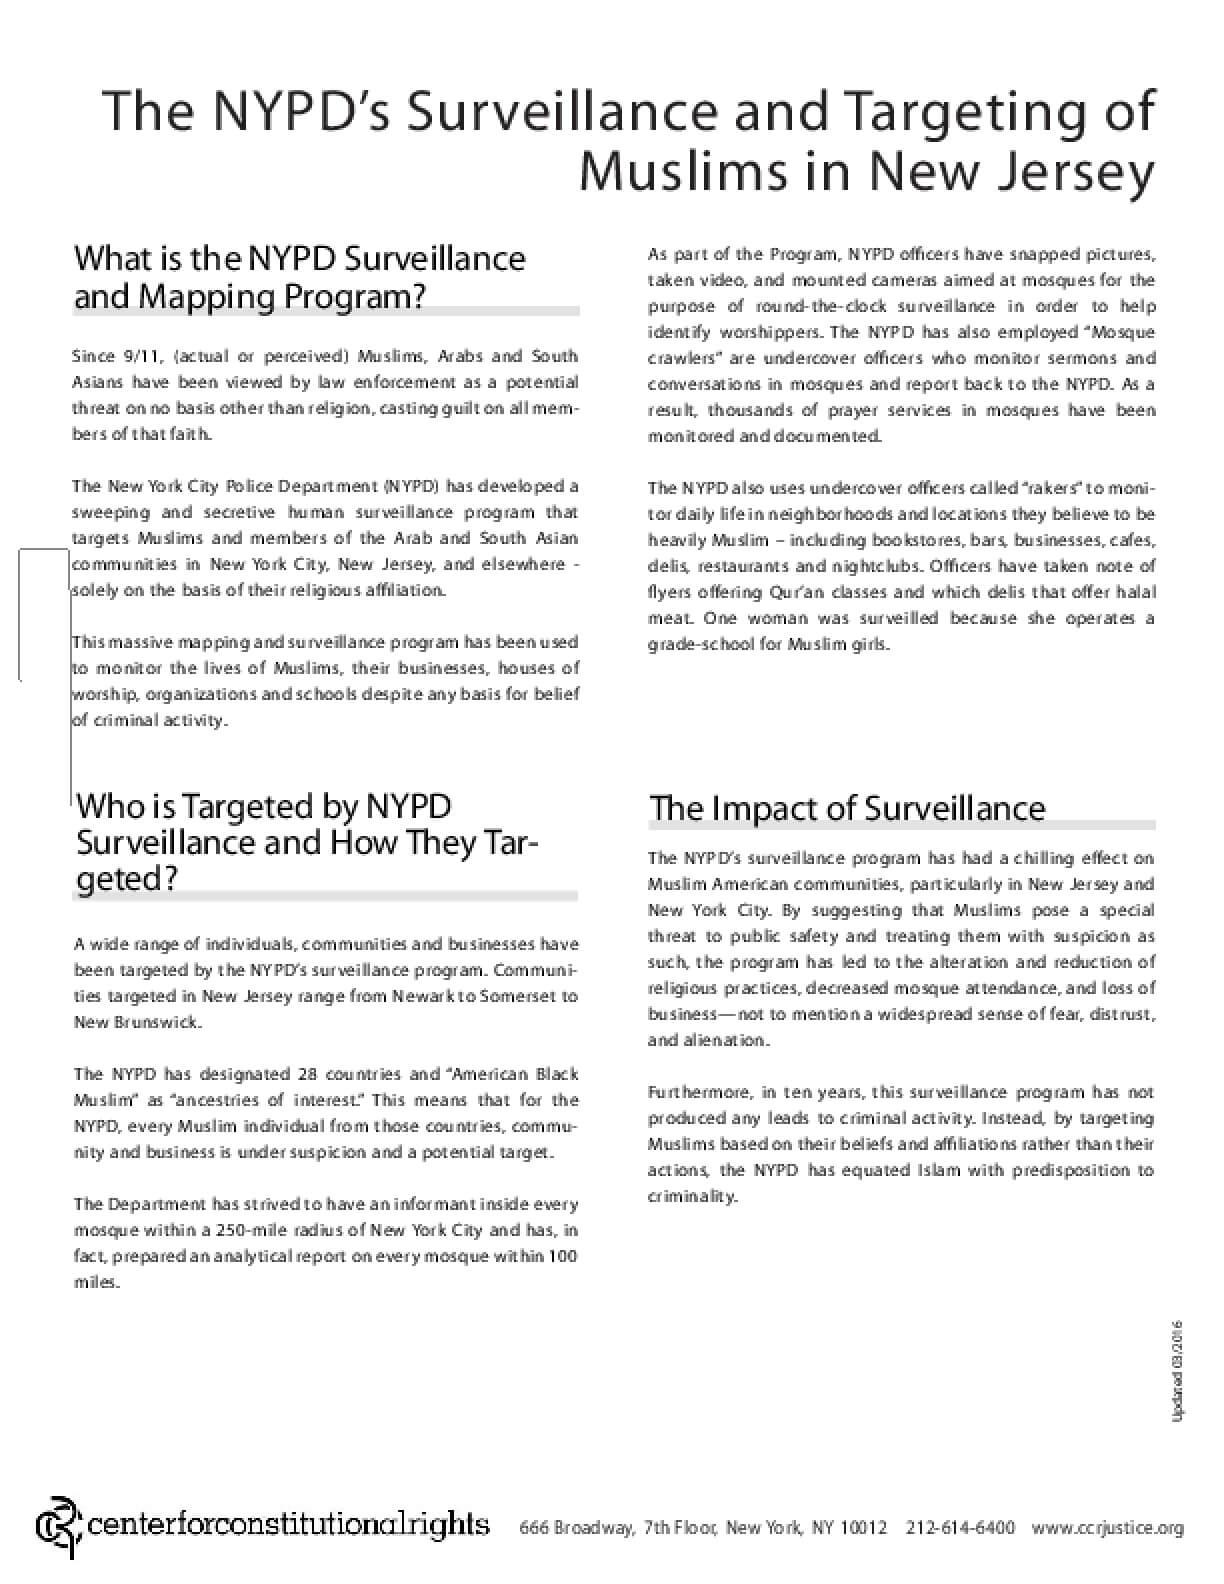 The NYPD's Surveillance and Targeting of Muslims in New Jersey